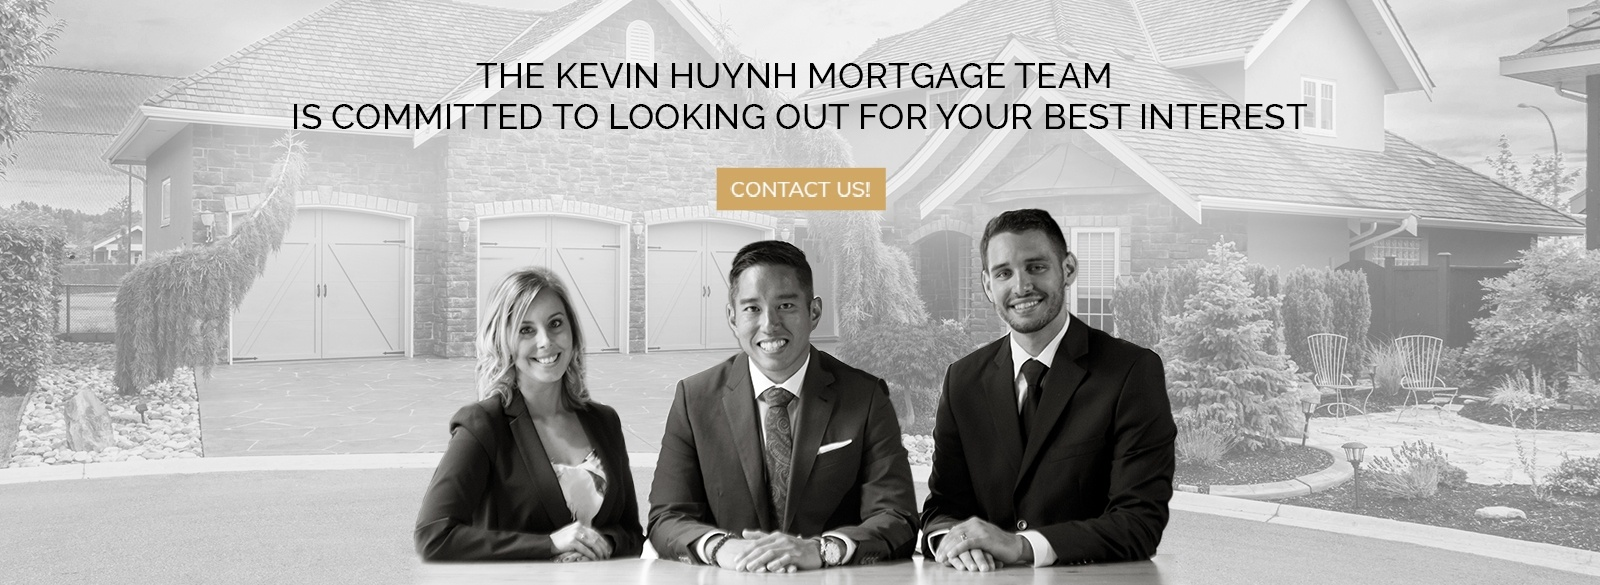 Mortgage Advisor Hamilton